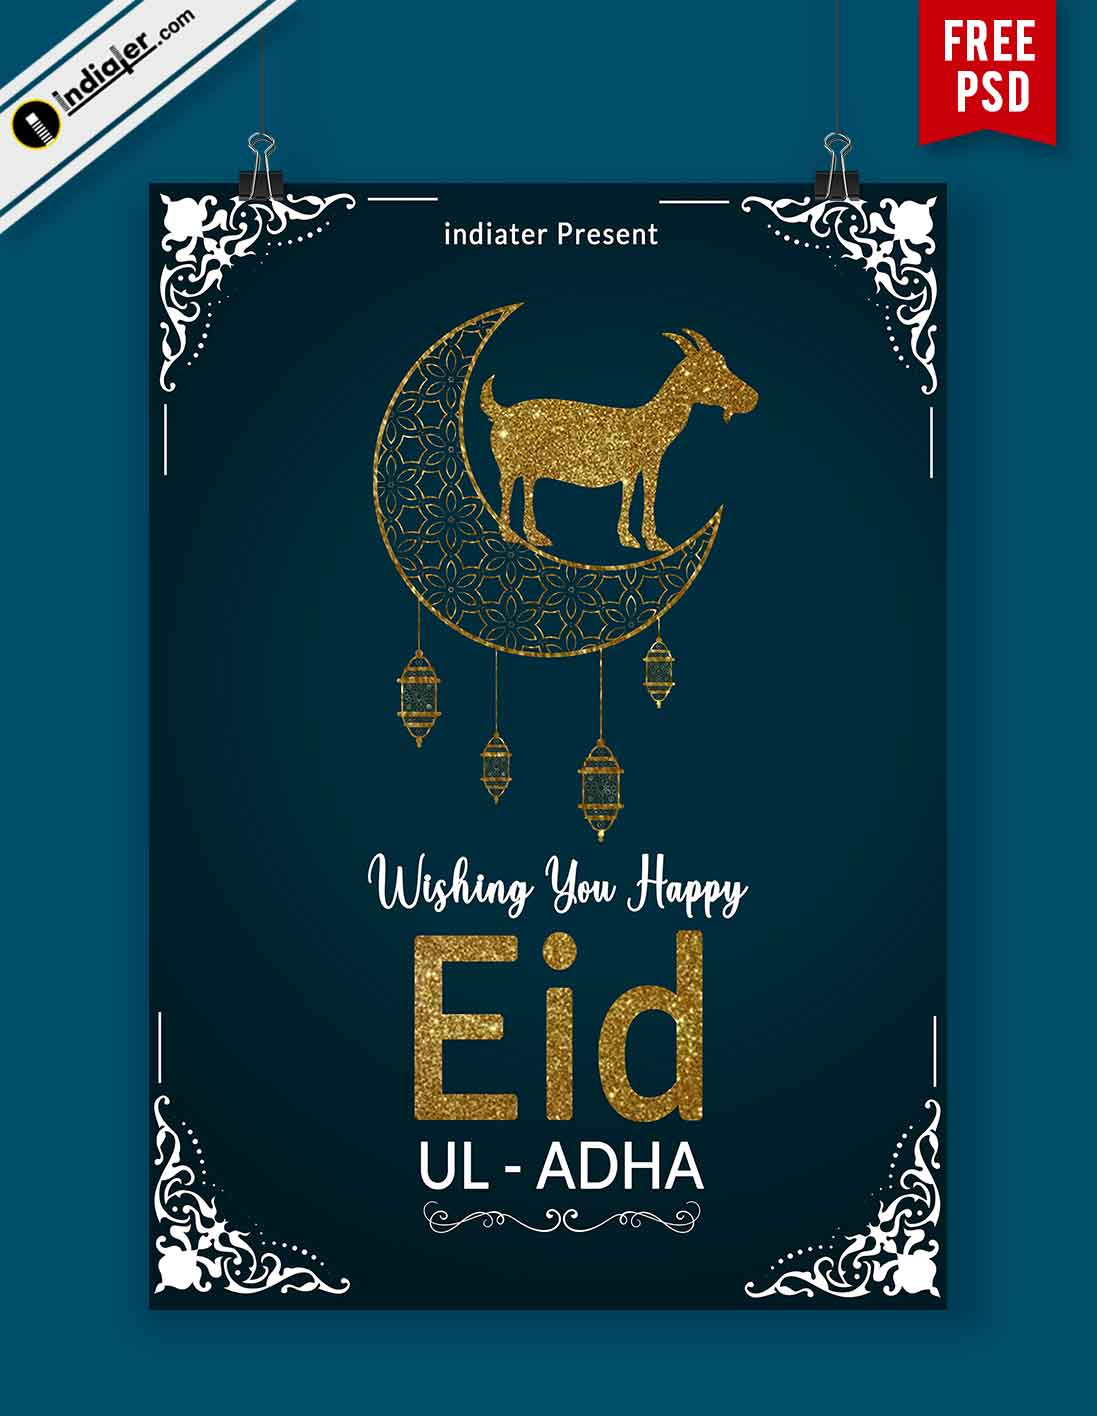 Free Eid Ul Adha Wishes Flyer PSD Template - Indiater